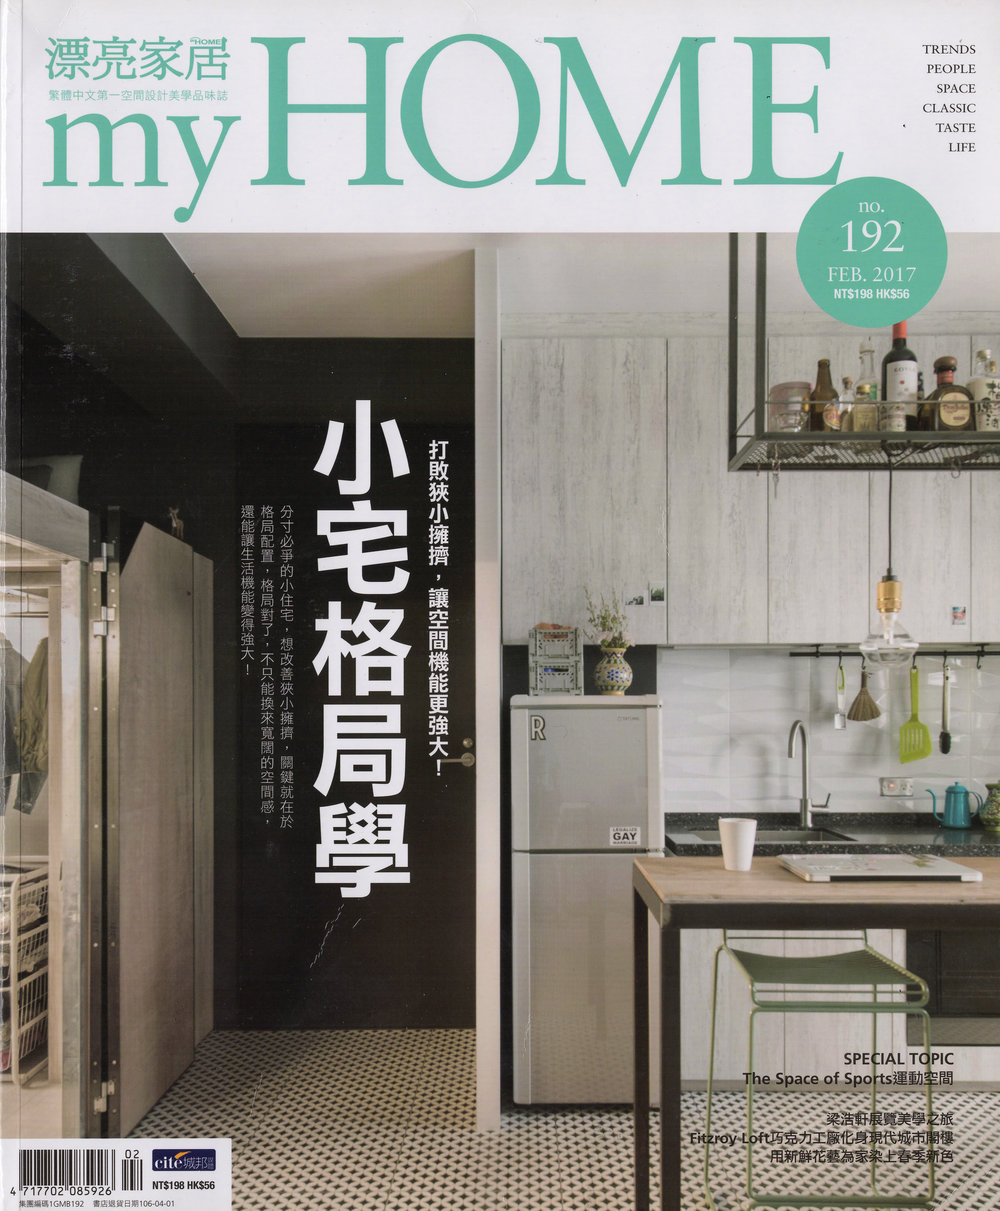 goCstudio_My Home Cover.JPG